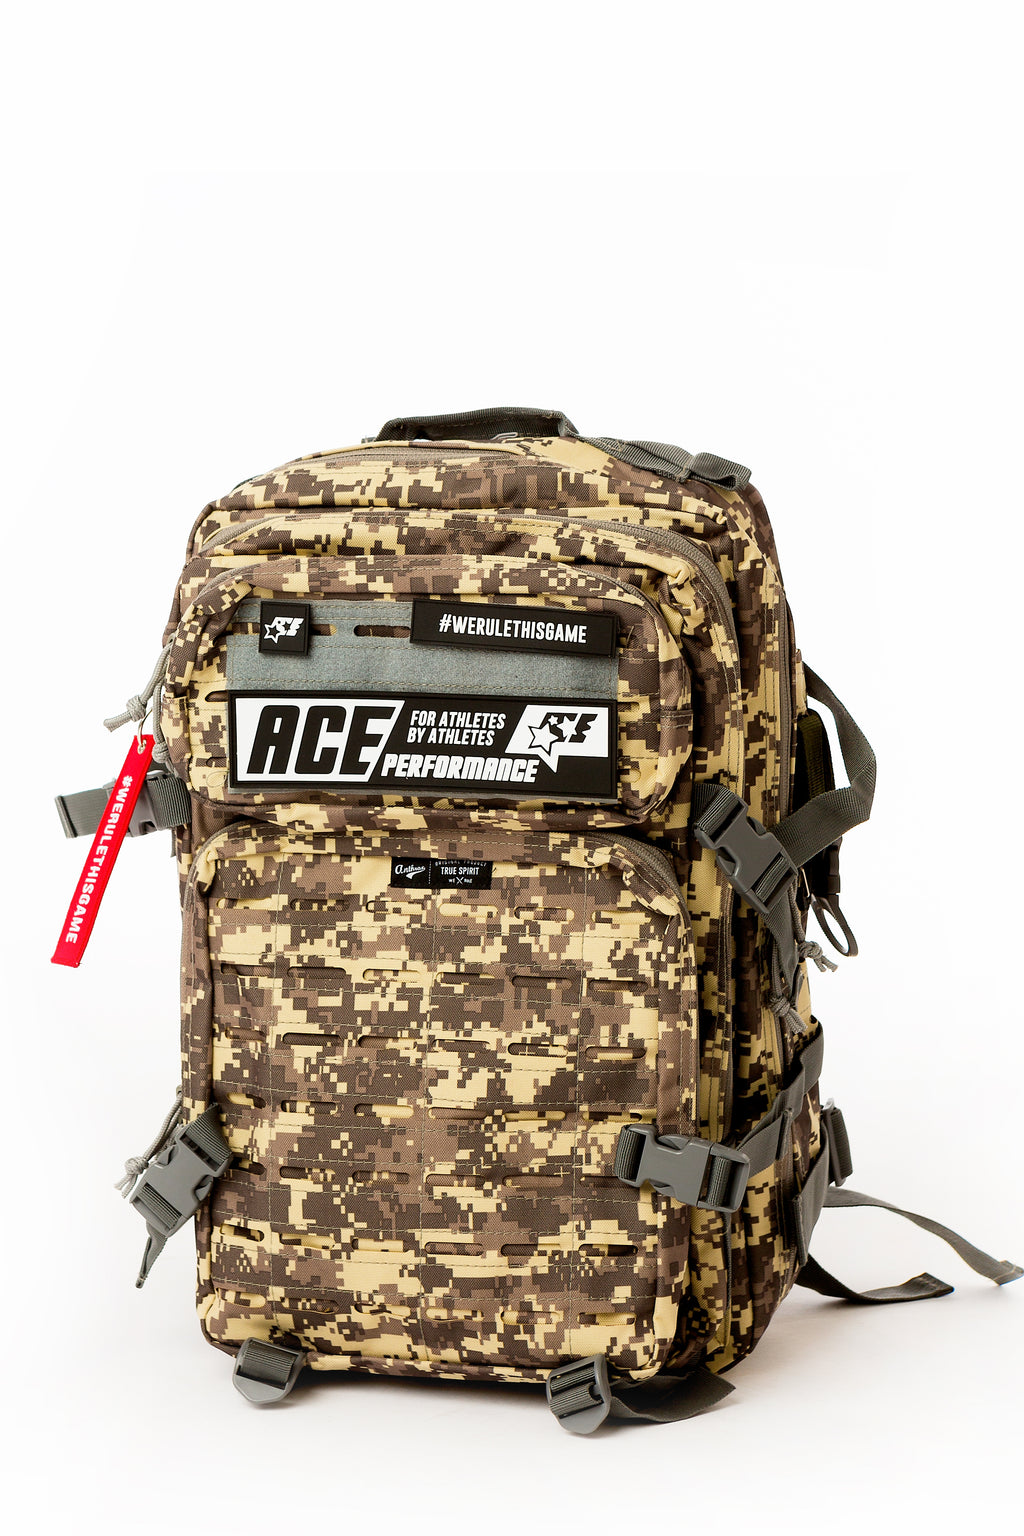 DEPLOYMENT BACK PACK - DESERT CAMO - ACEPERFORMANCE